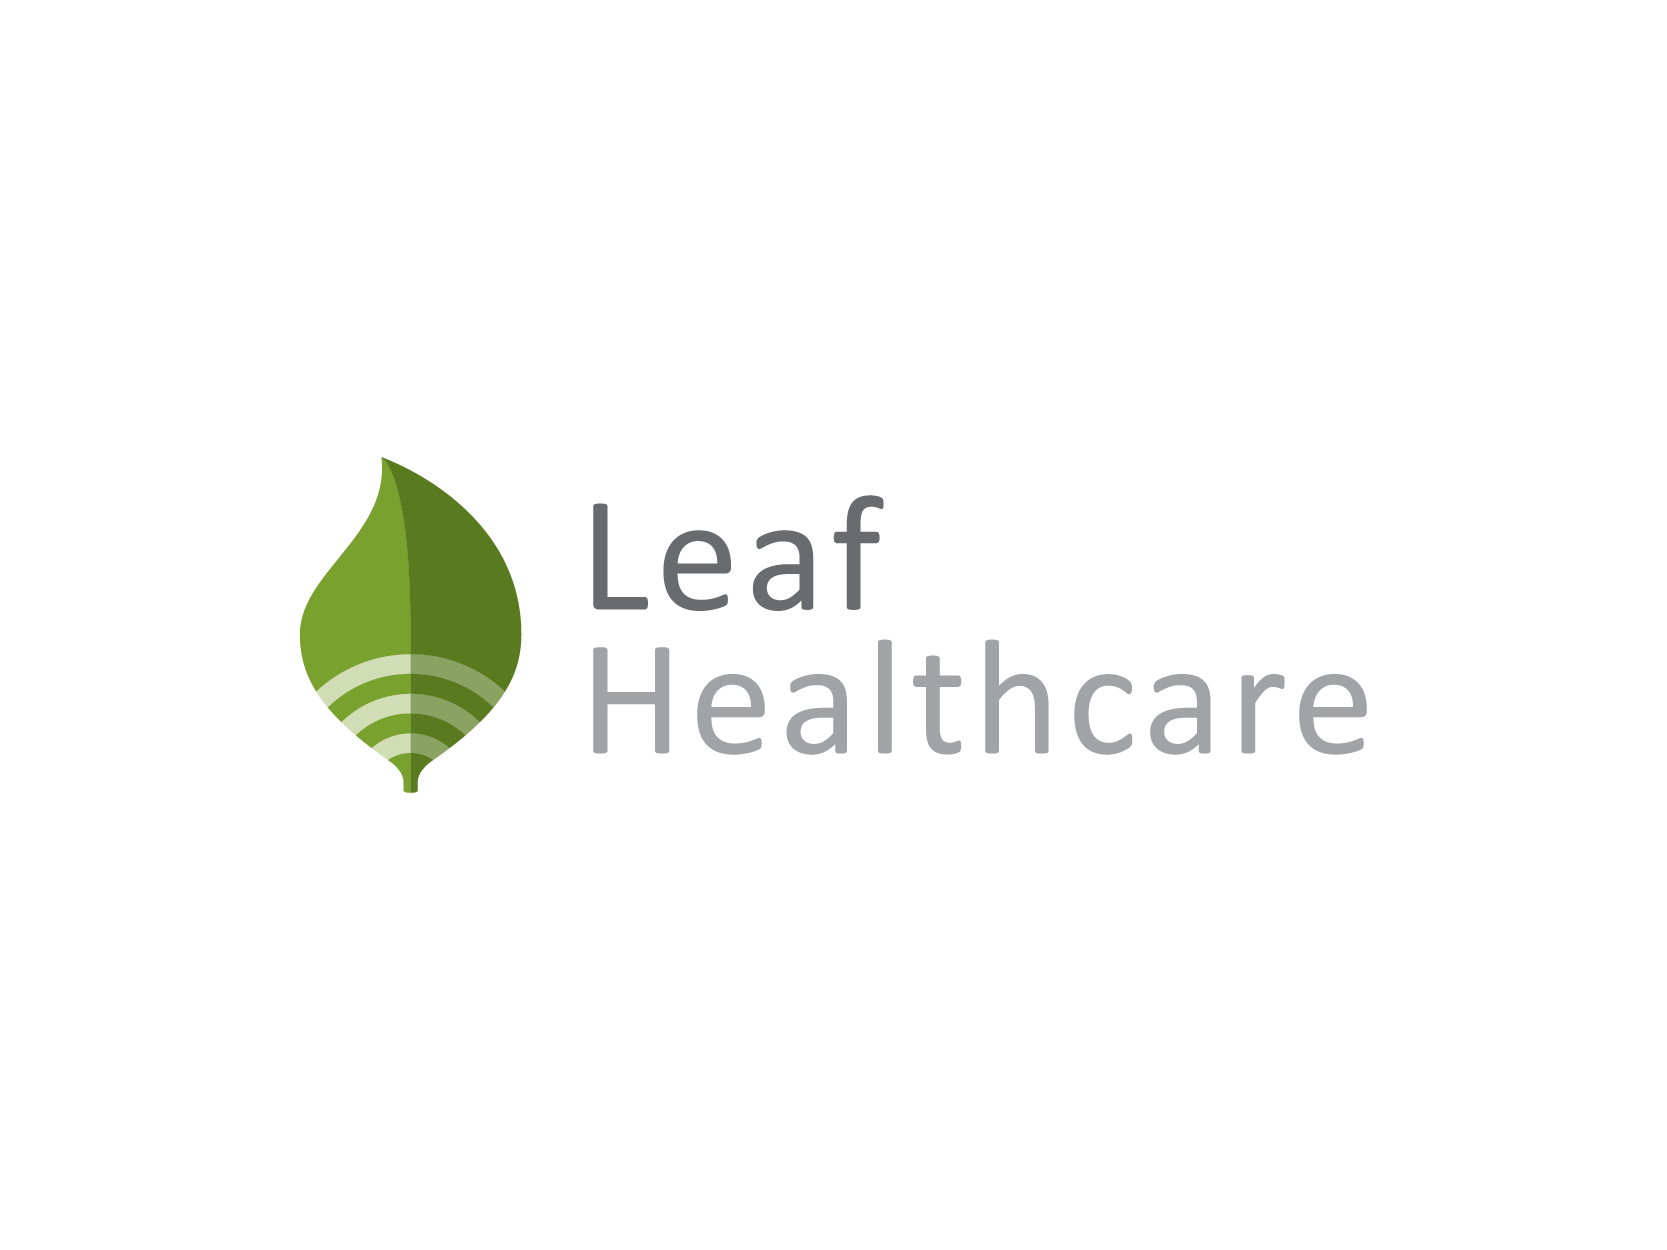 Leaf Healthcare Logo